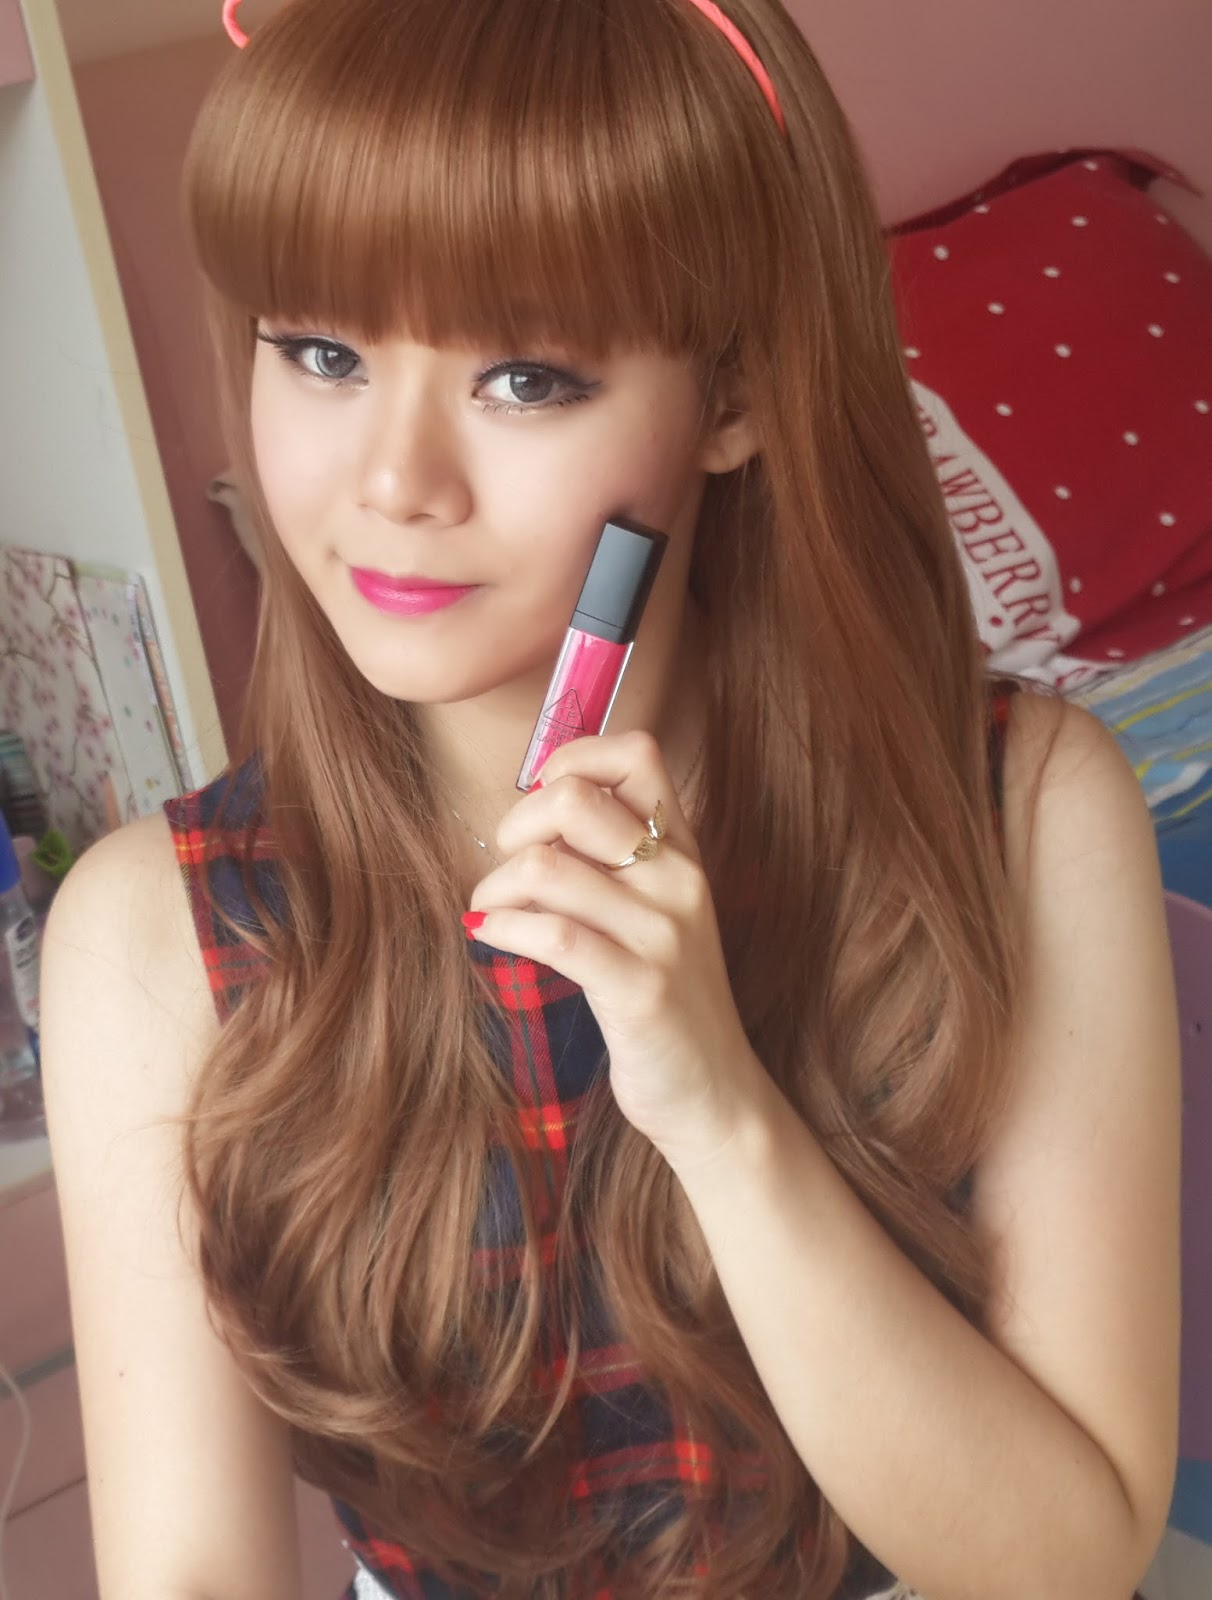 3ce lip lacquer pink boom xx orange